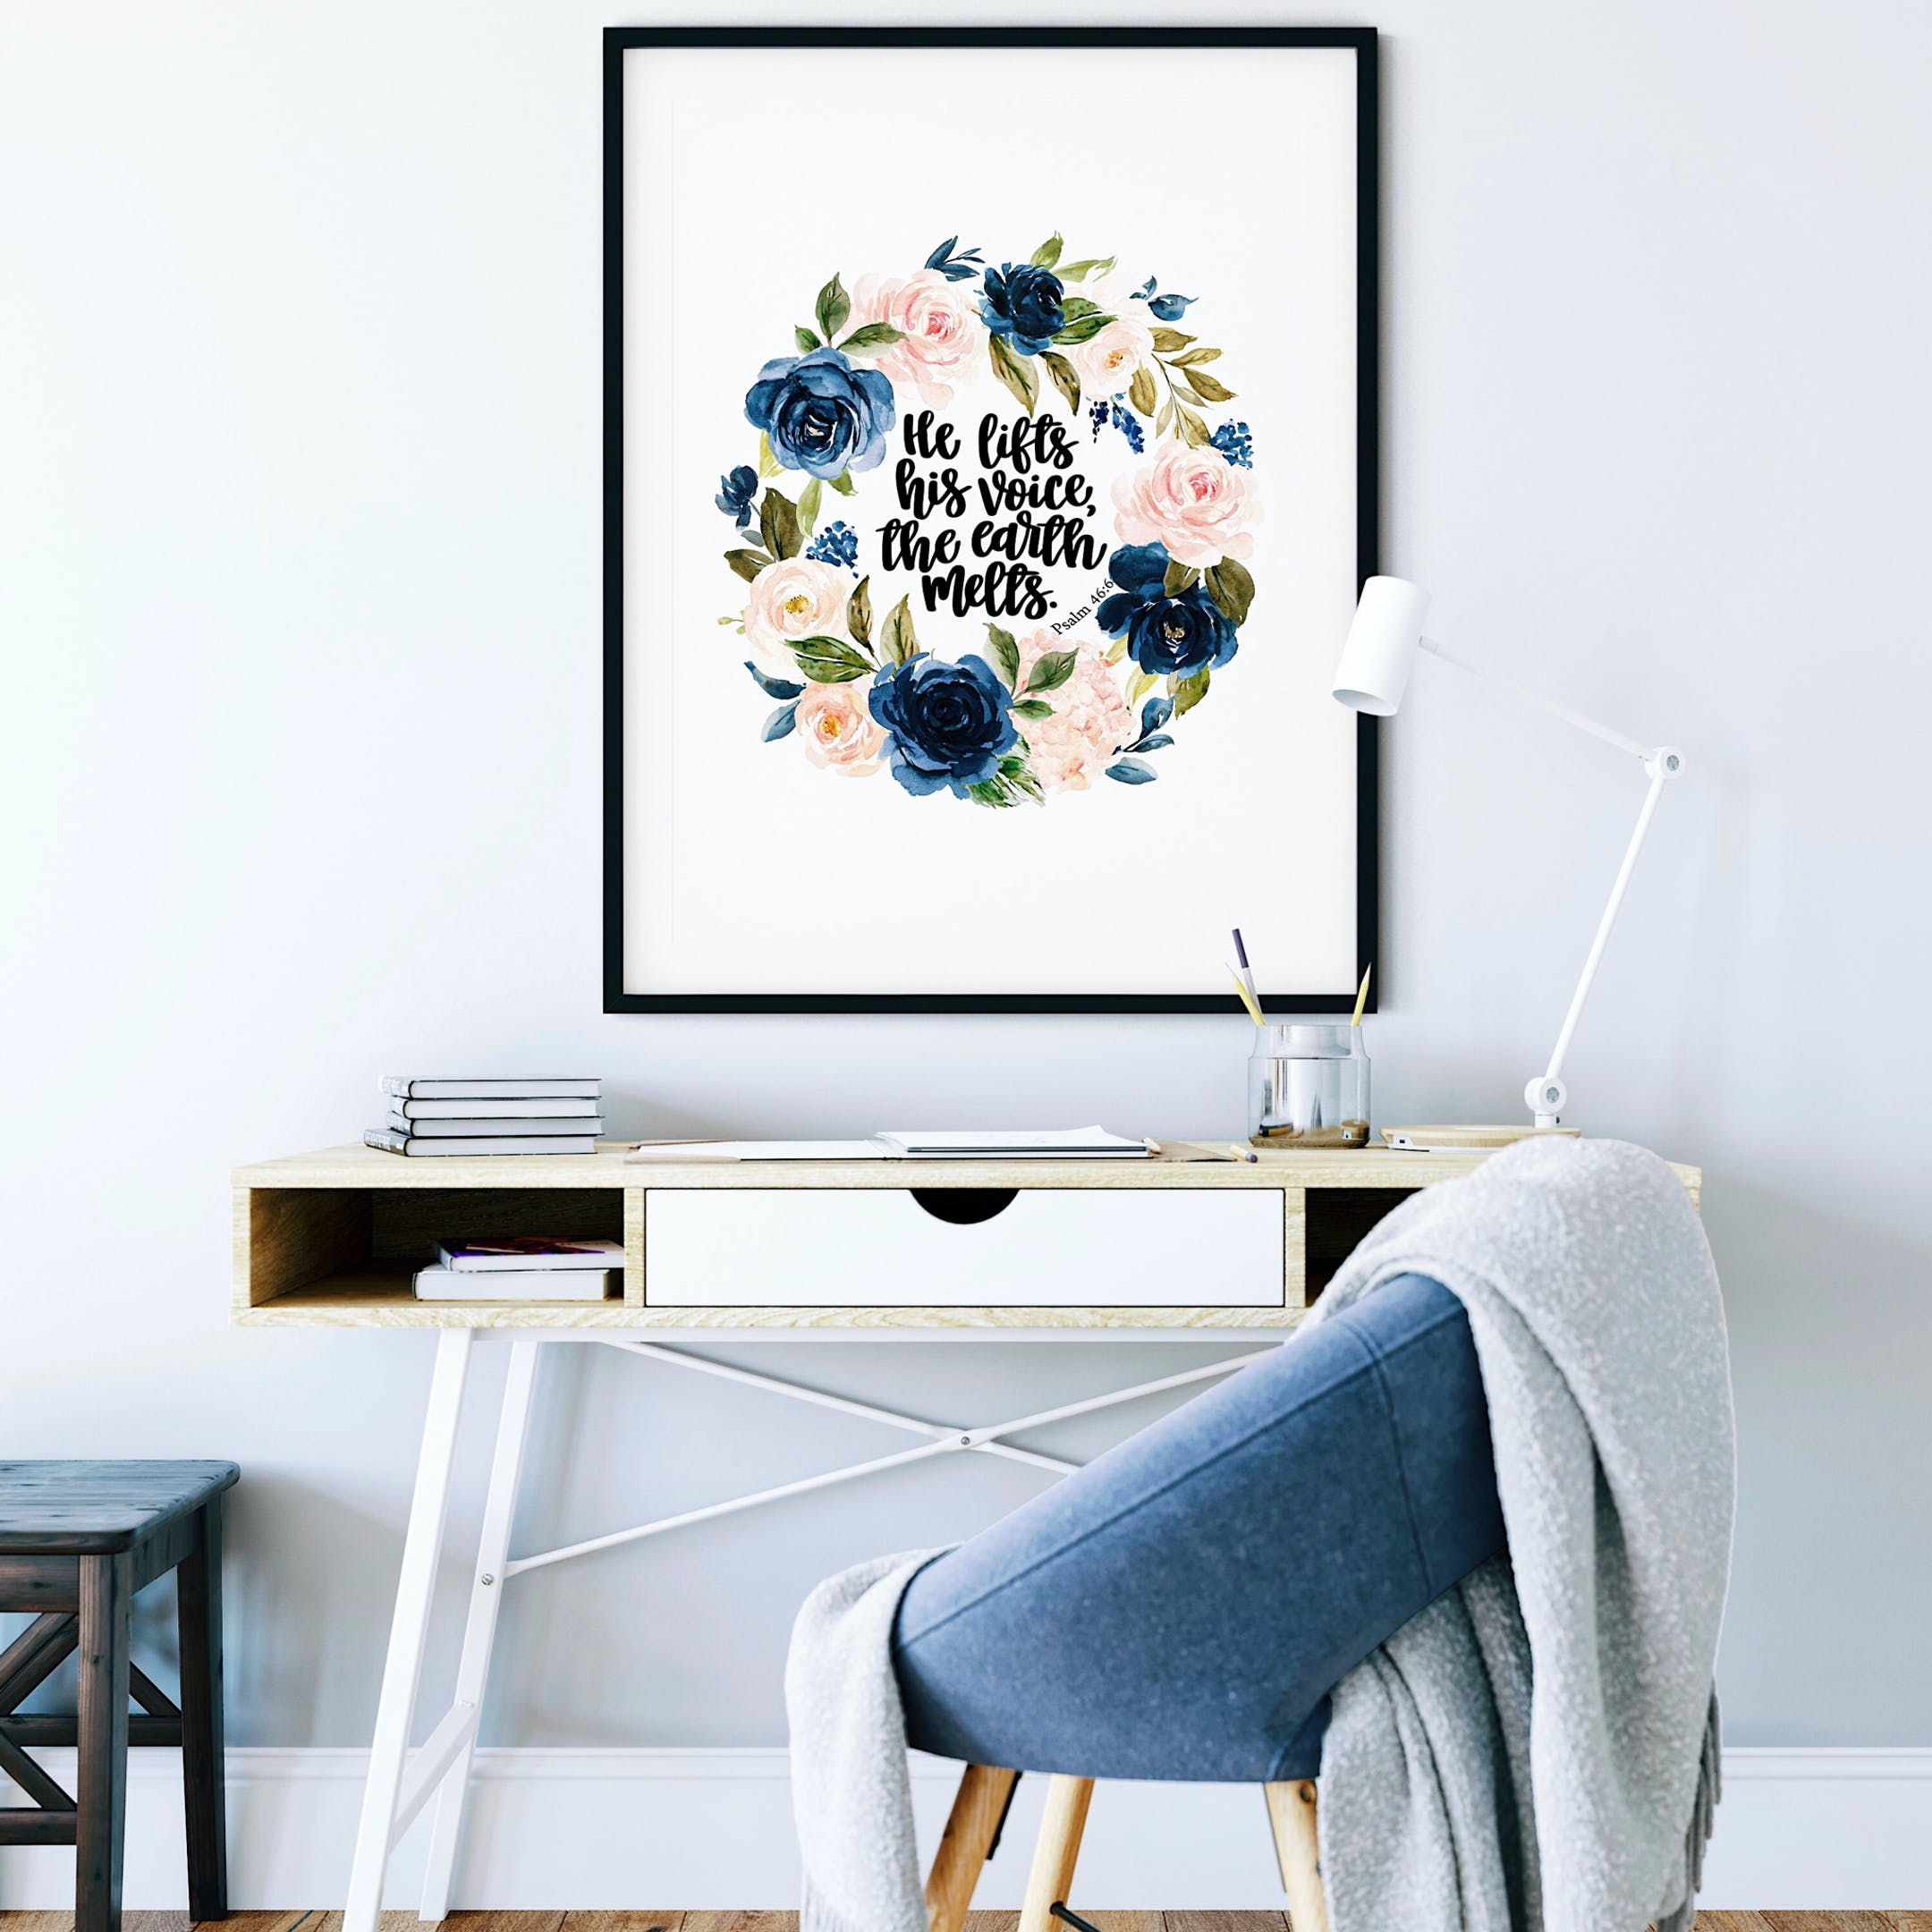 Psalm 46:6 Print - He Lifts His Voice, The Earth Melts - Izzy & Pop